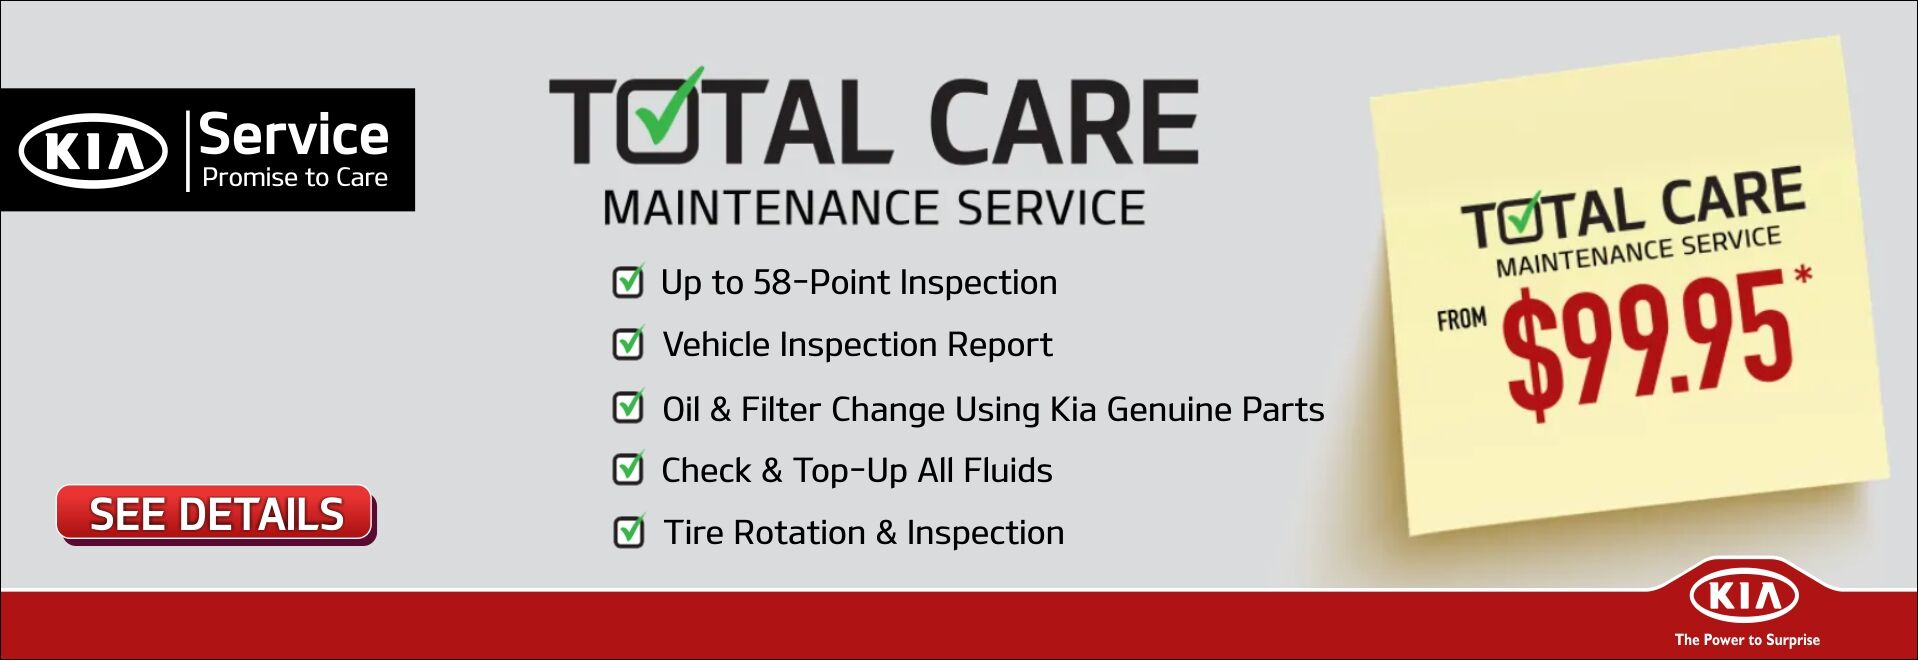 Kia Total Care Maintenance